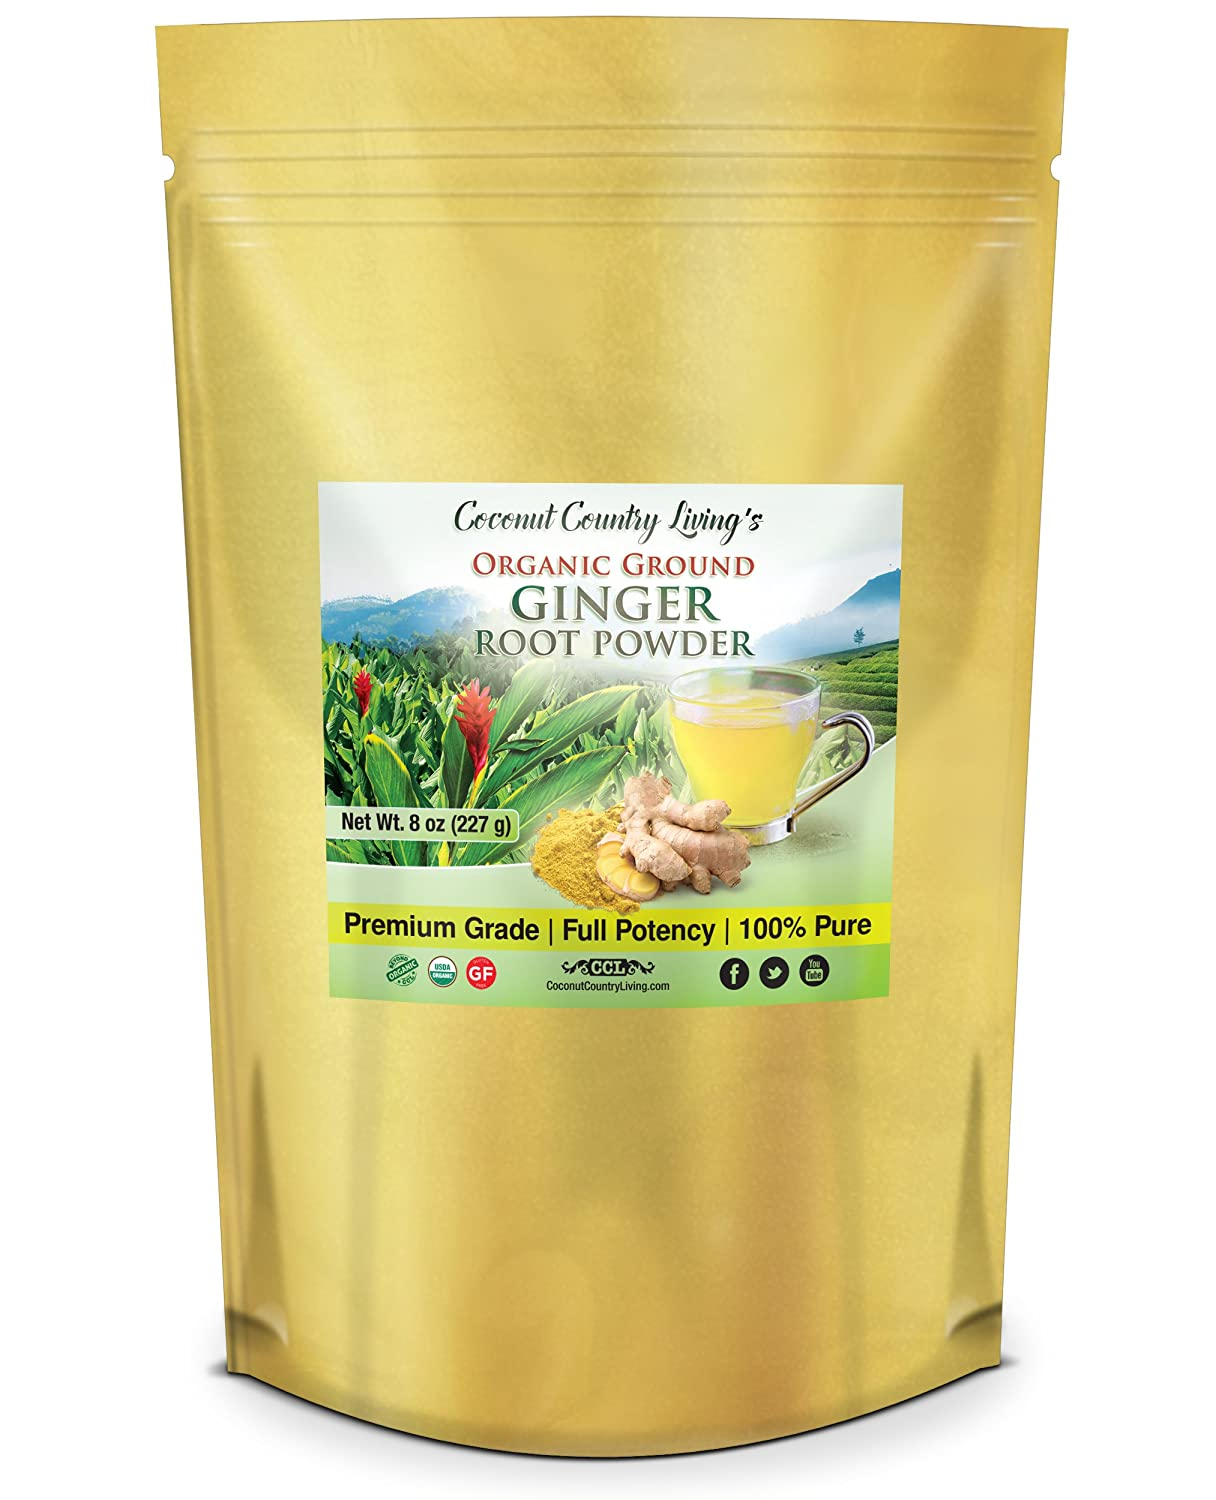 Organic Ginger Root Powder (8 oz), Aromatic, Freshly Harvested Raw Spice for Health, Tea, Baking, Beauty, Cooking, Gluten free & Healing Spice, Zingiber Officinale Powder